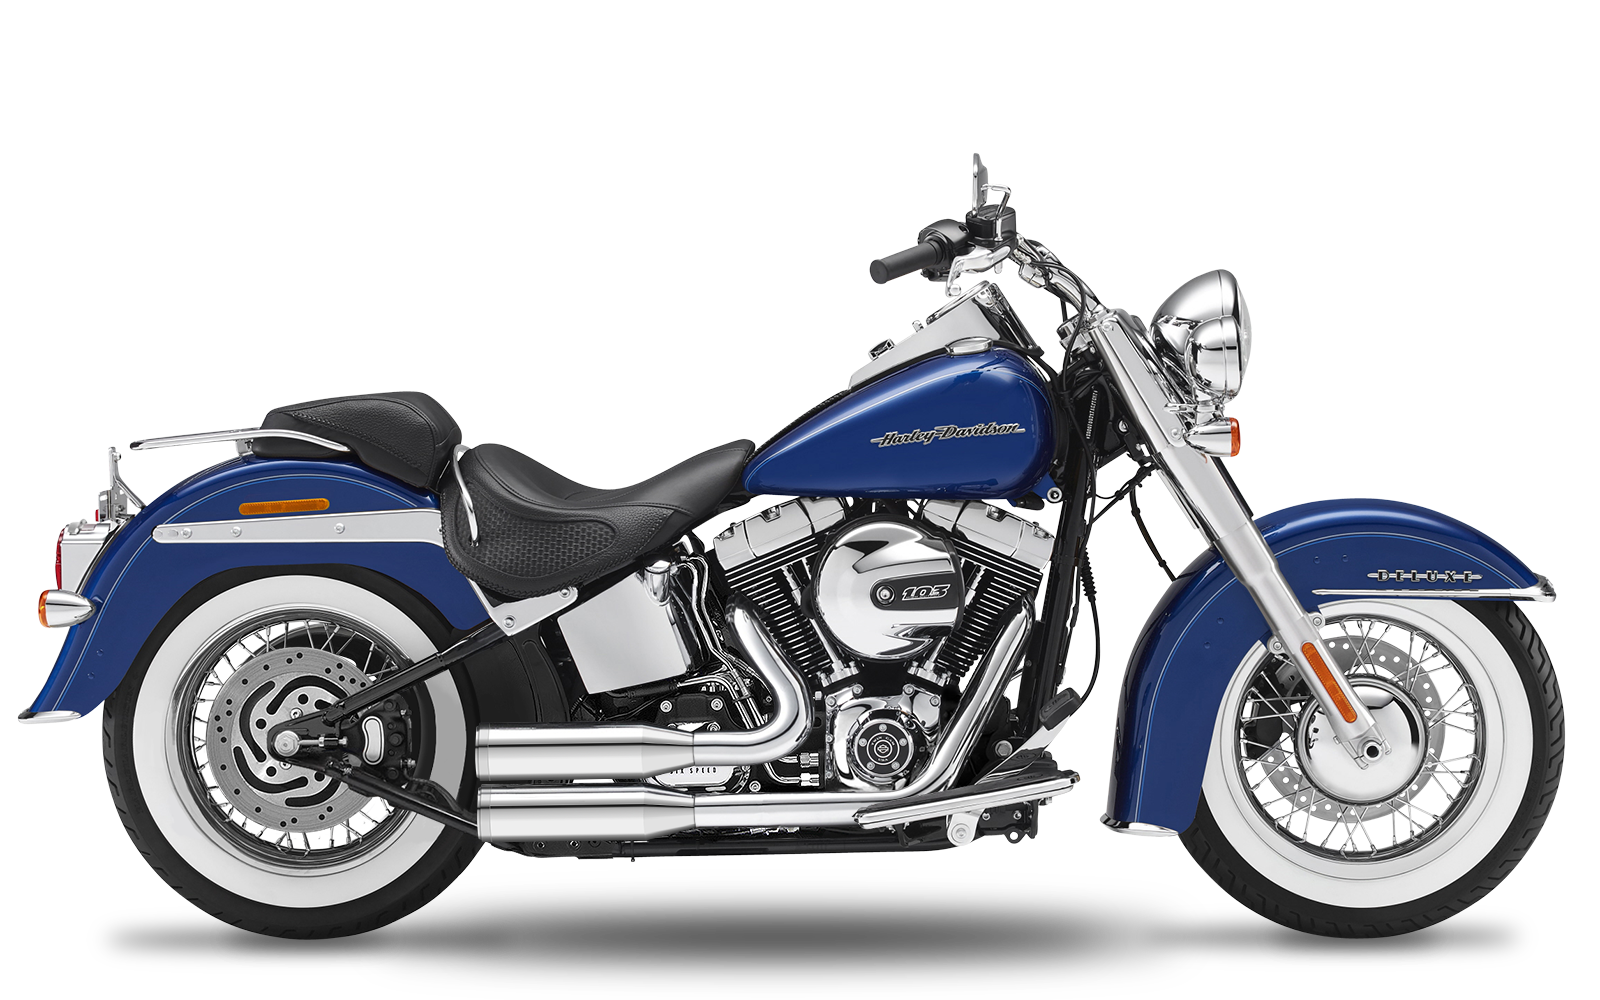 Softail - Deluxe - TC88 - 2000-2006 - Complete systems